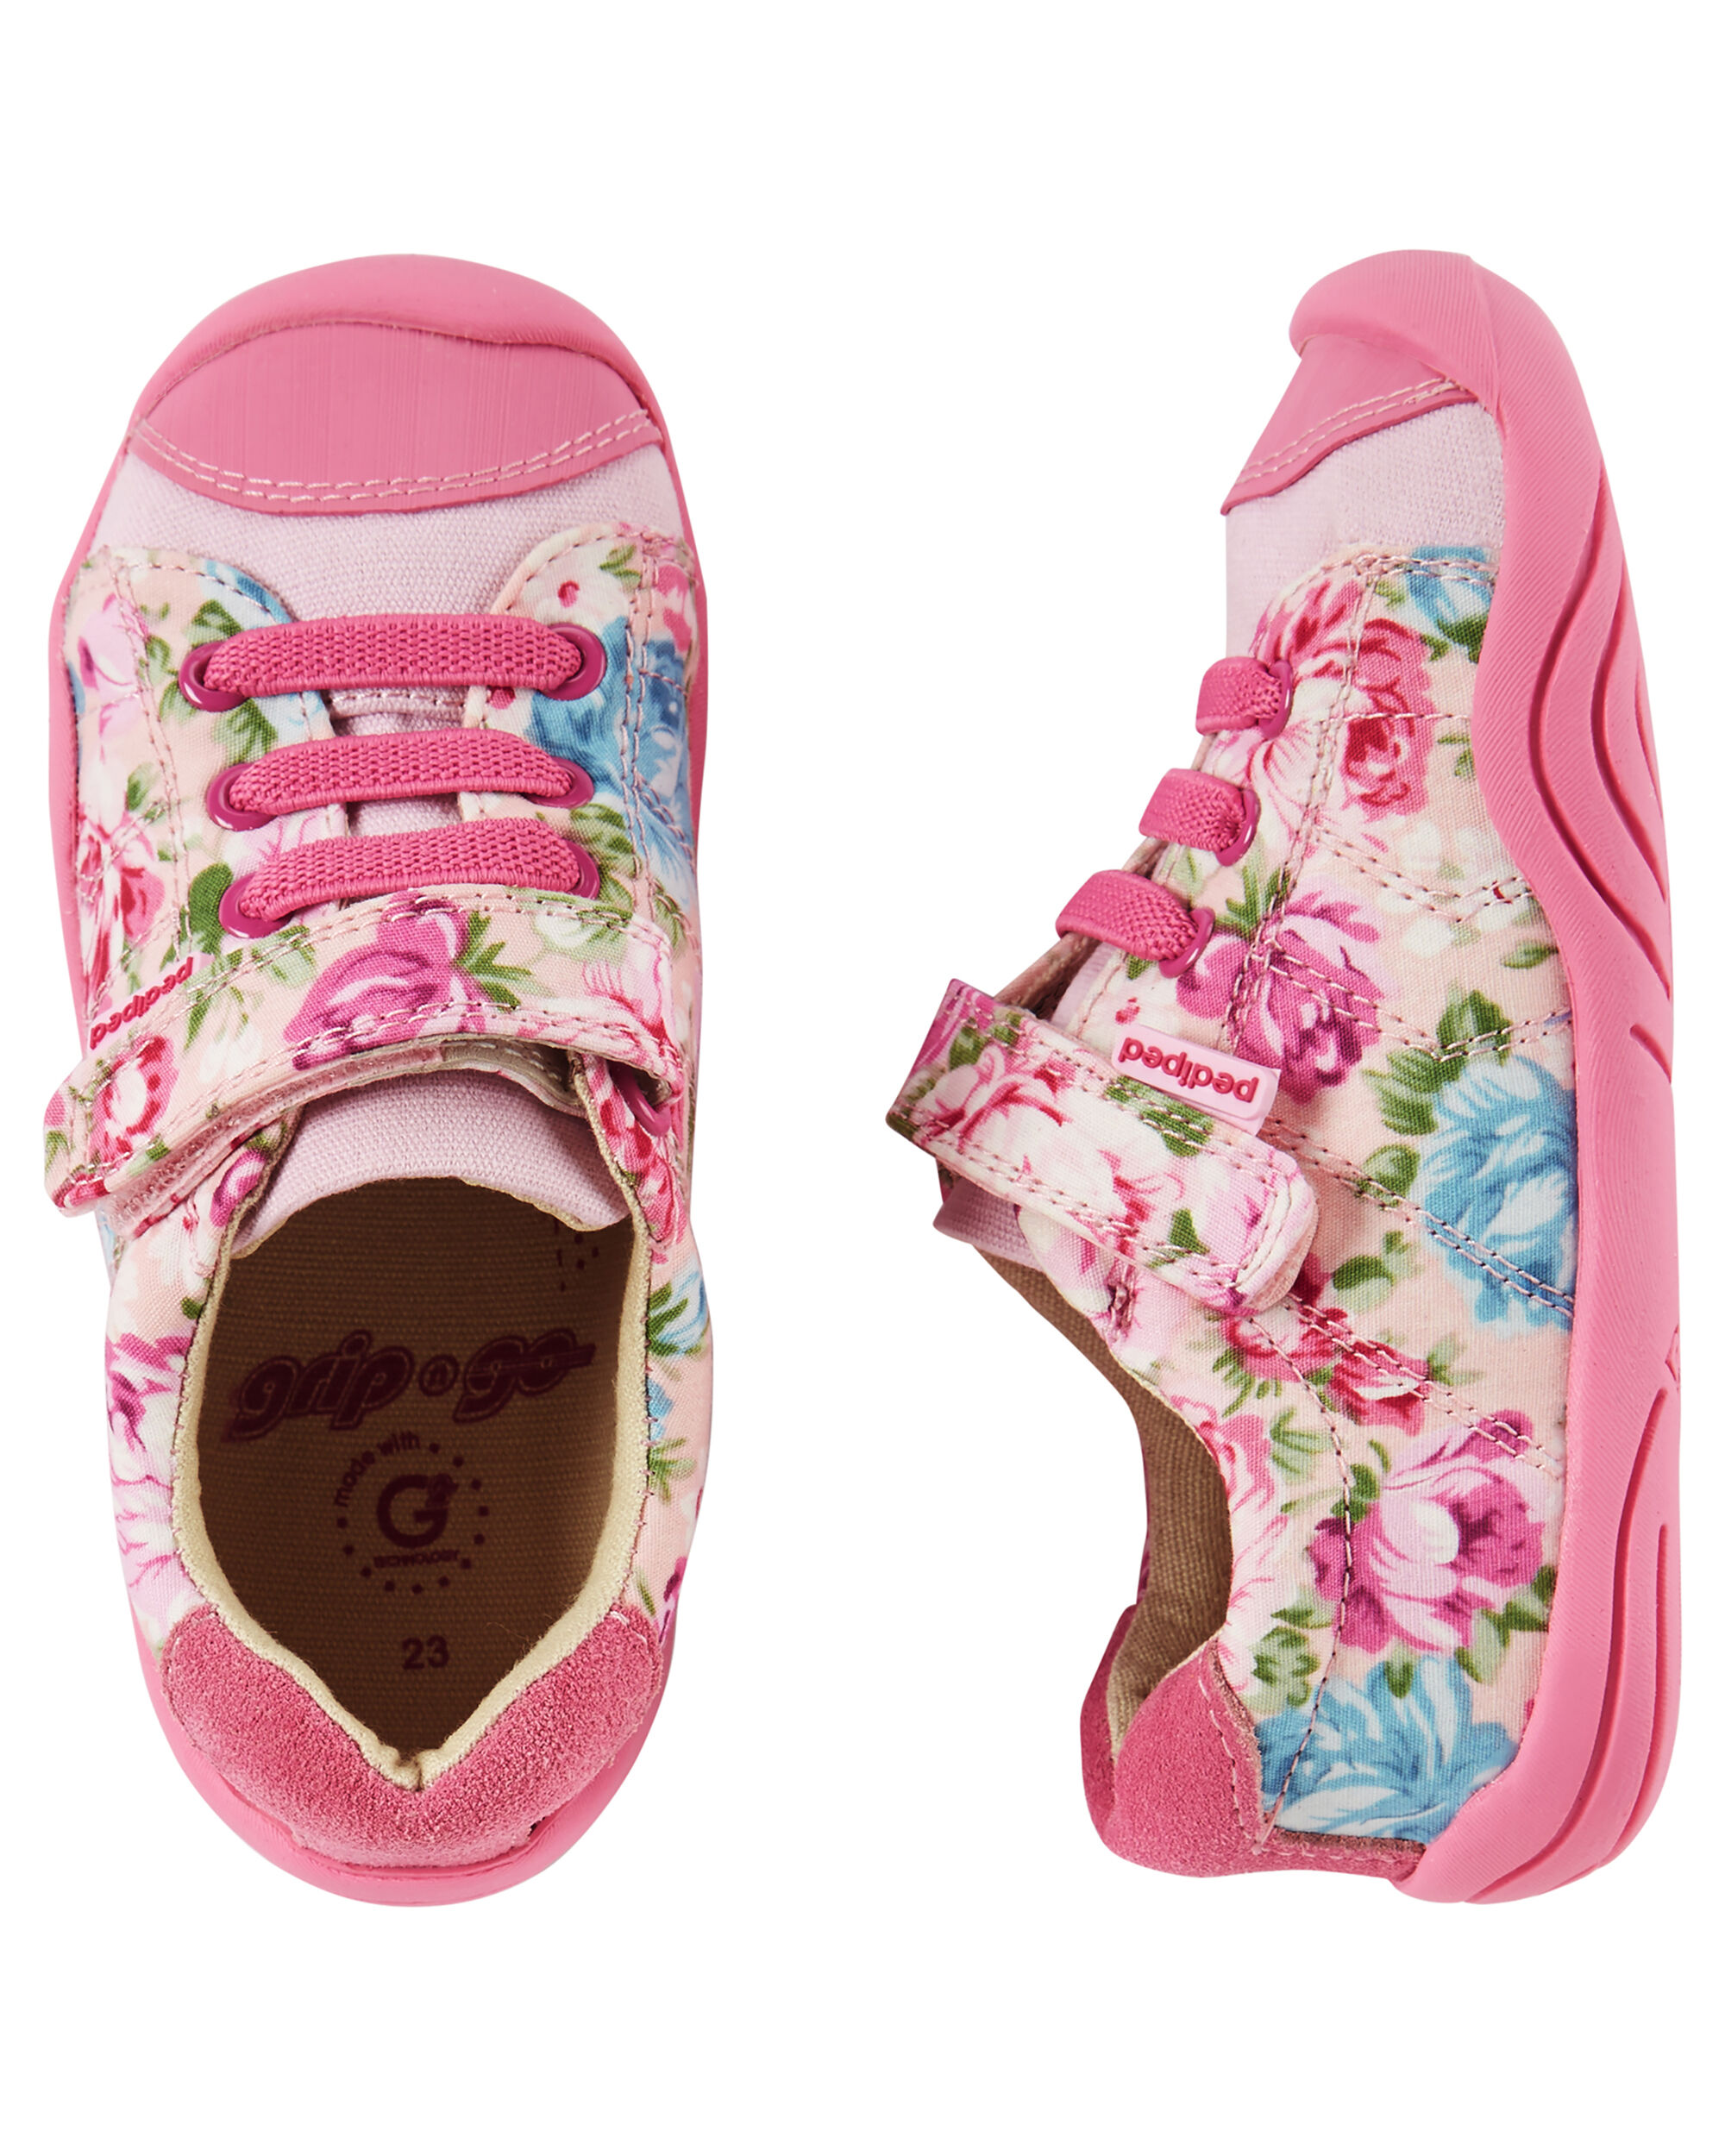 Pediped Grip n Go Jake Pink Floral